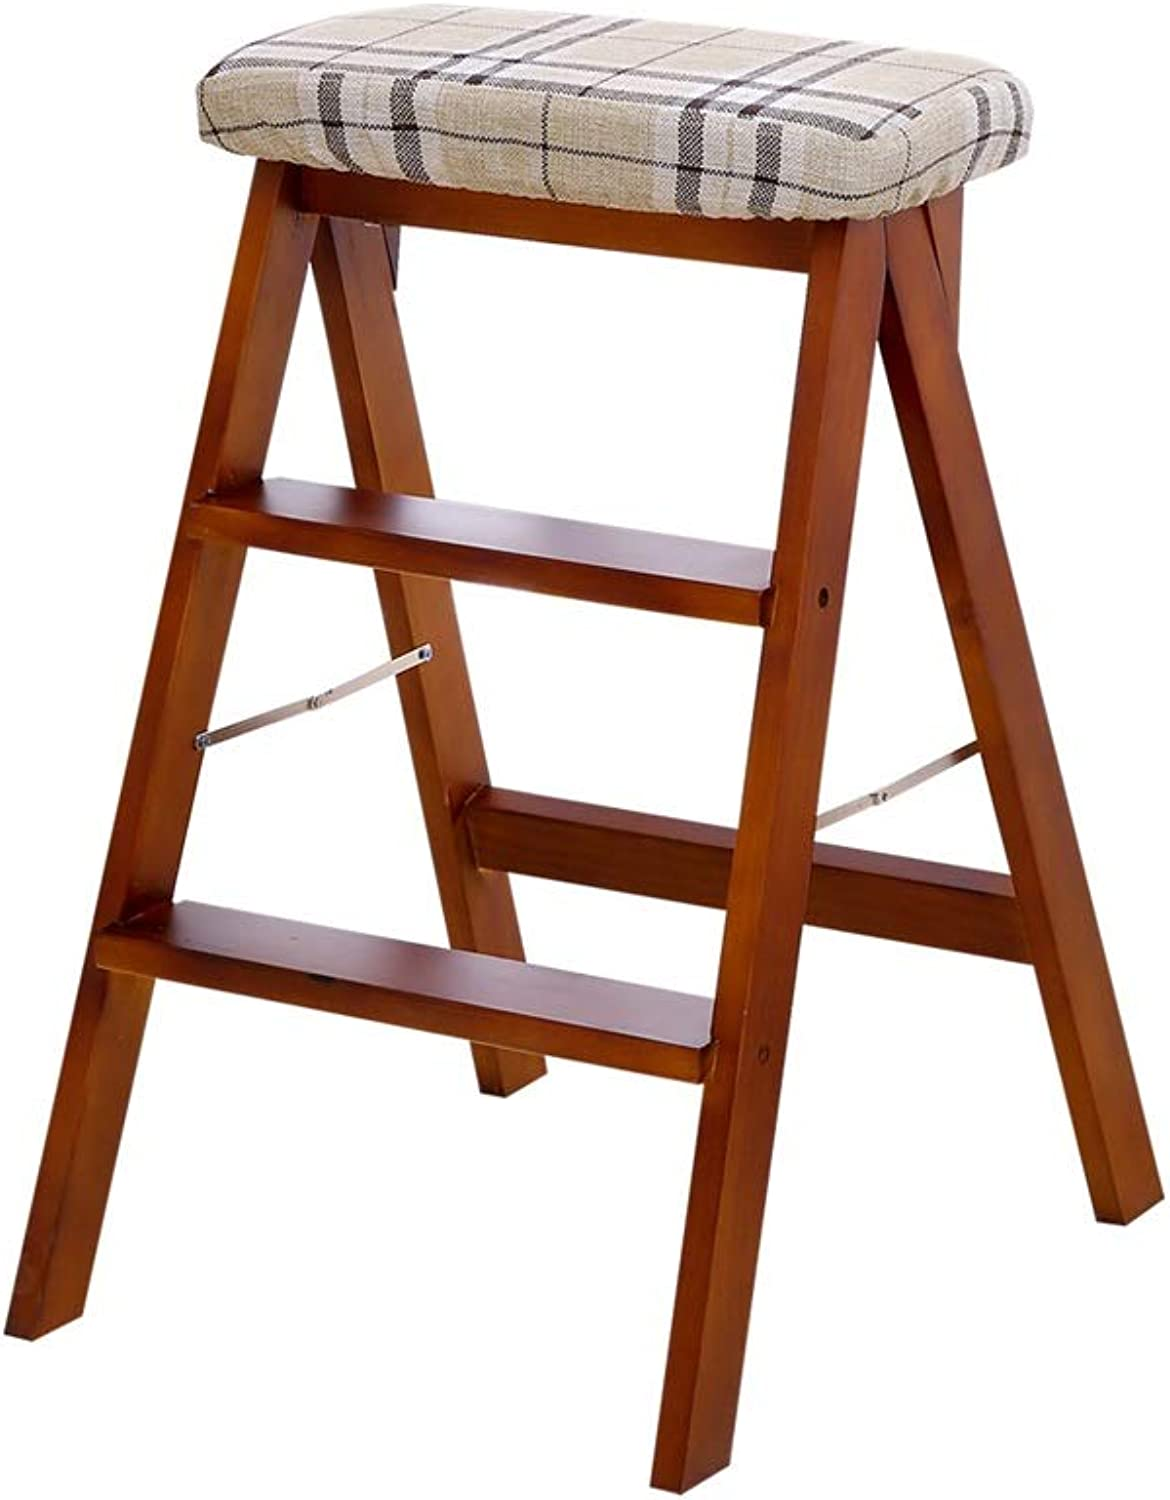 Wood Step Stool Folding Ladder Chair Bench Seat Utility Multi-Functional, Wooden Step Stools for The Kitchen, Decorative Step Stool, Fancy Step Stool (color   A)